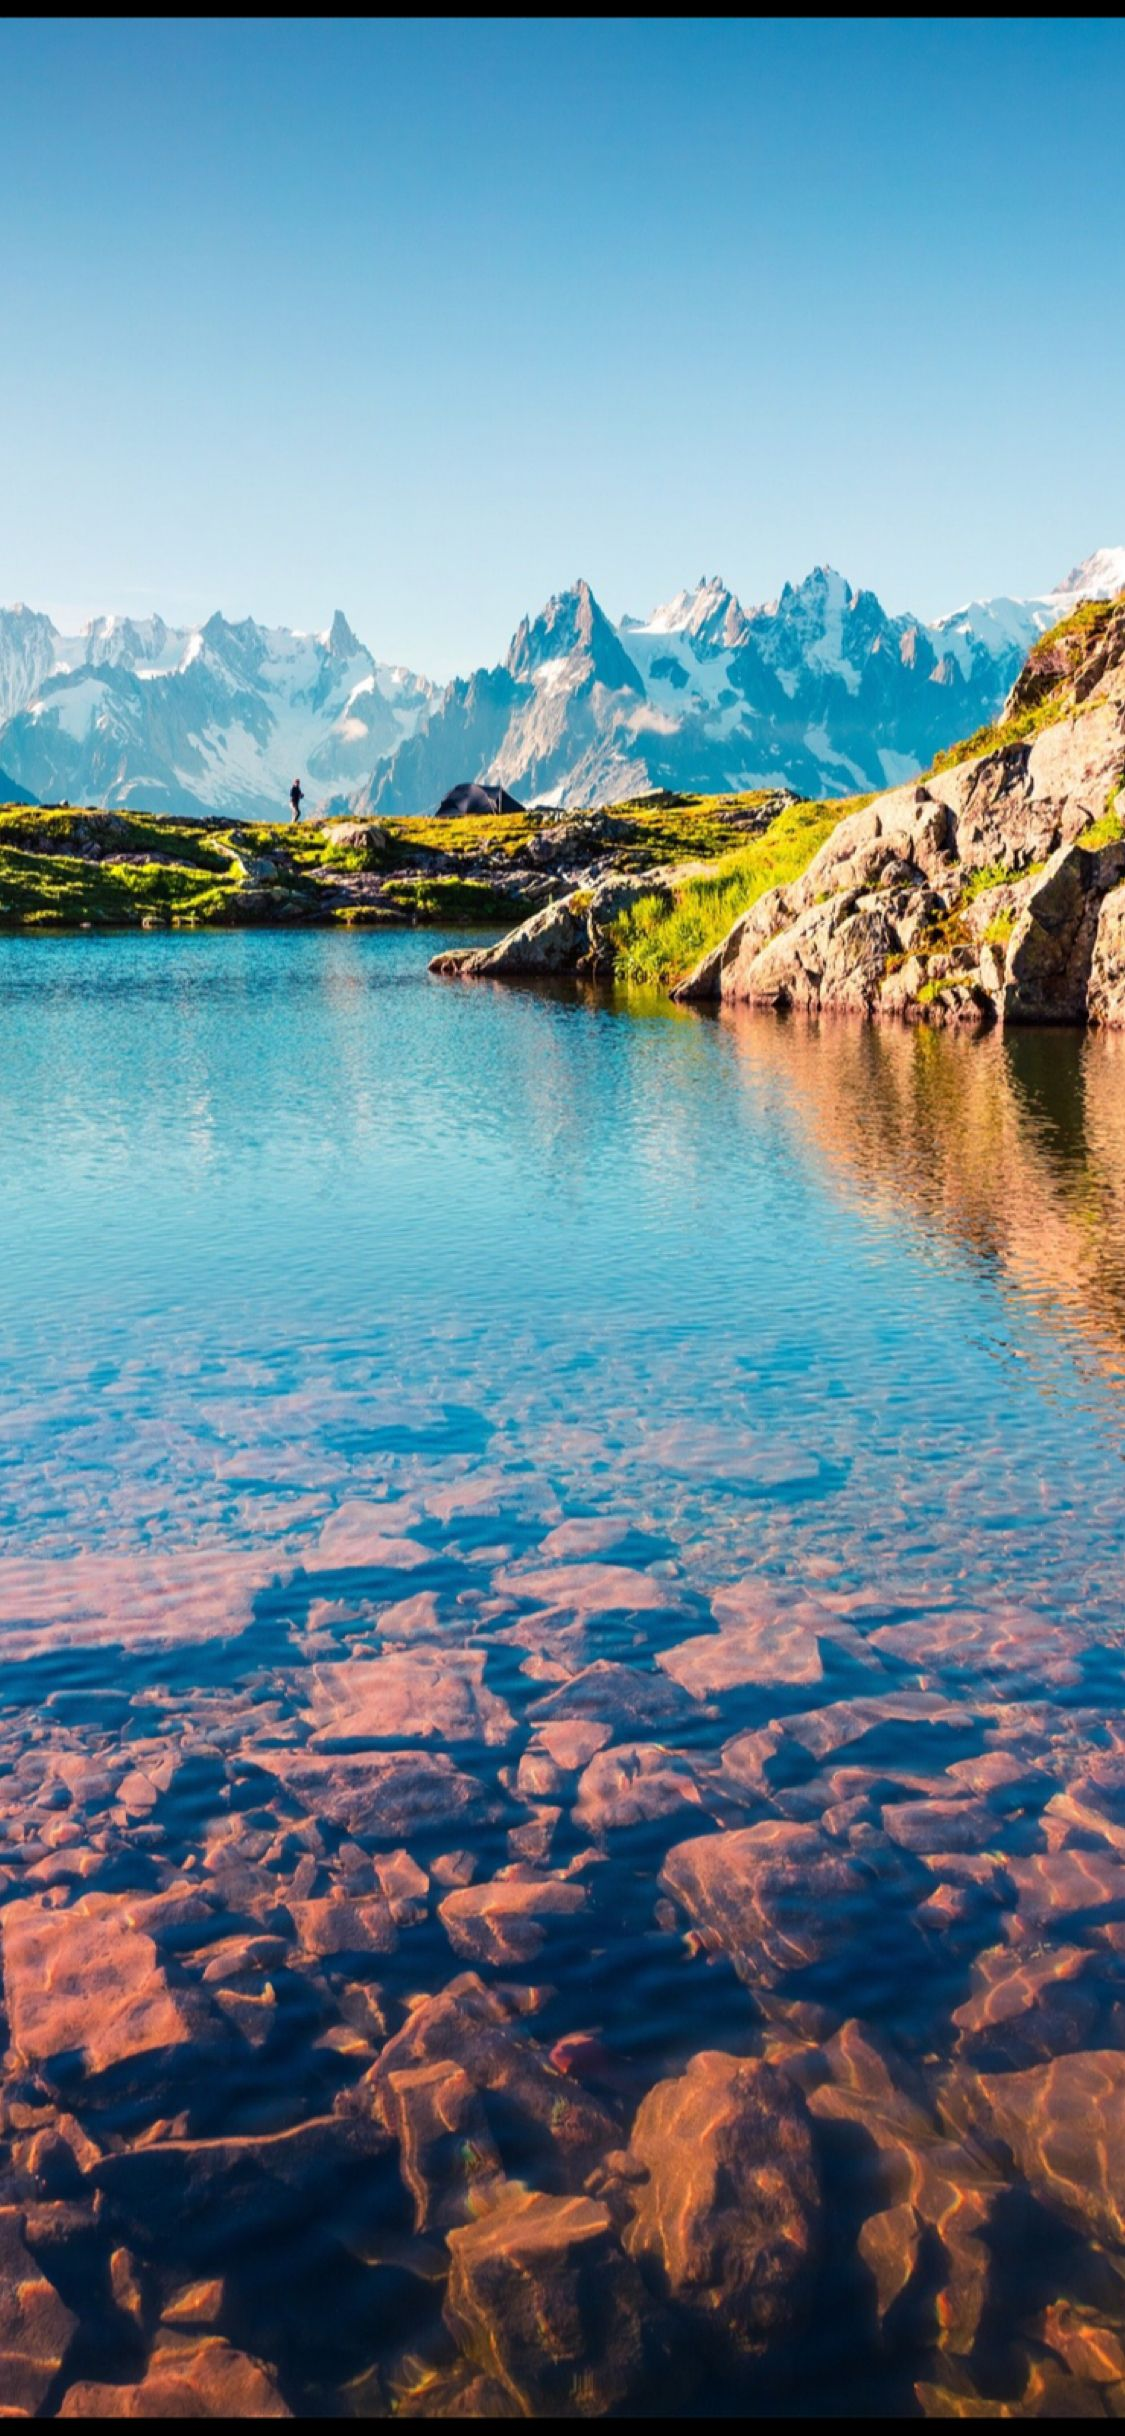 The Mountainous Lake Of Peace In 2019 Nature Wallpaper